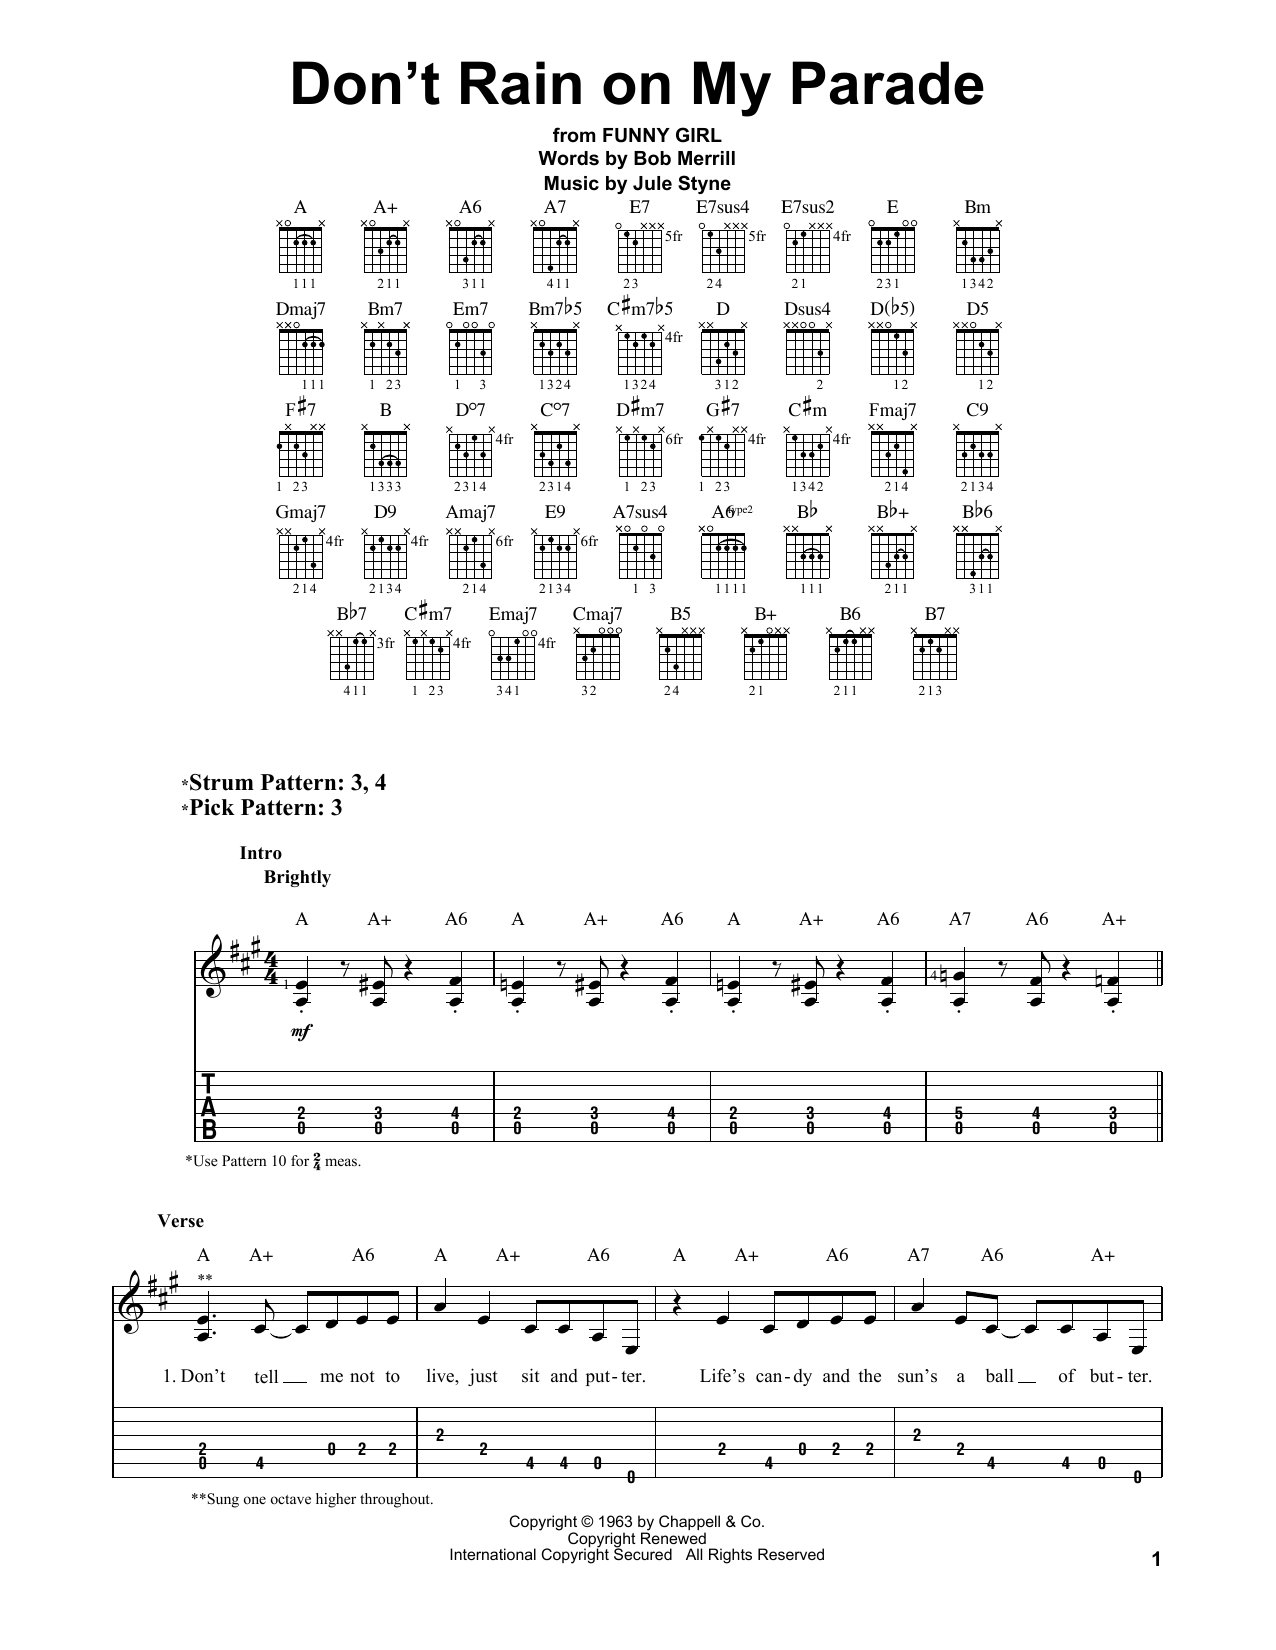 Don't Rain On My Parade Sheet Music